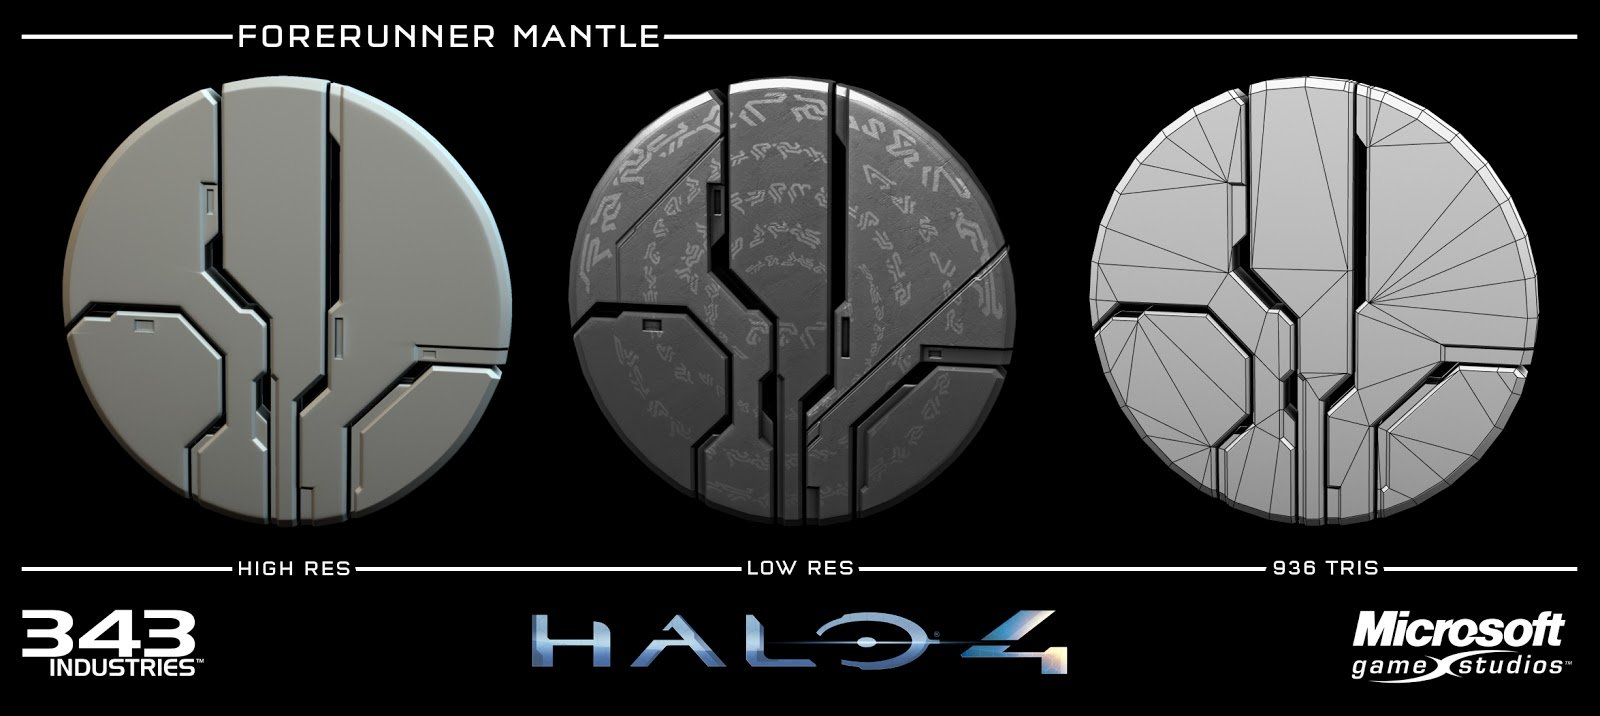 Halo_4_mantle_of_responsibility_by_thelvoramee-d5qeiob